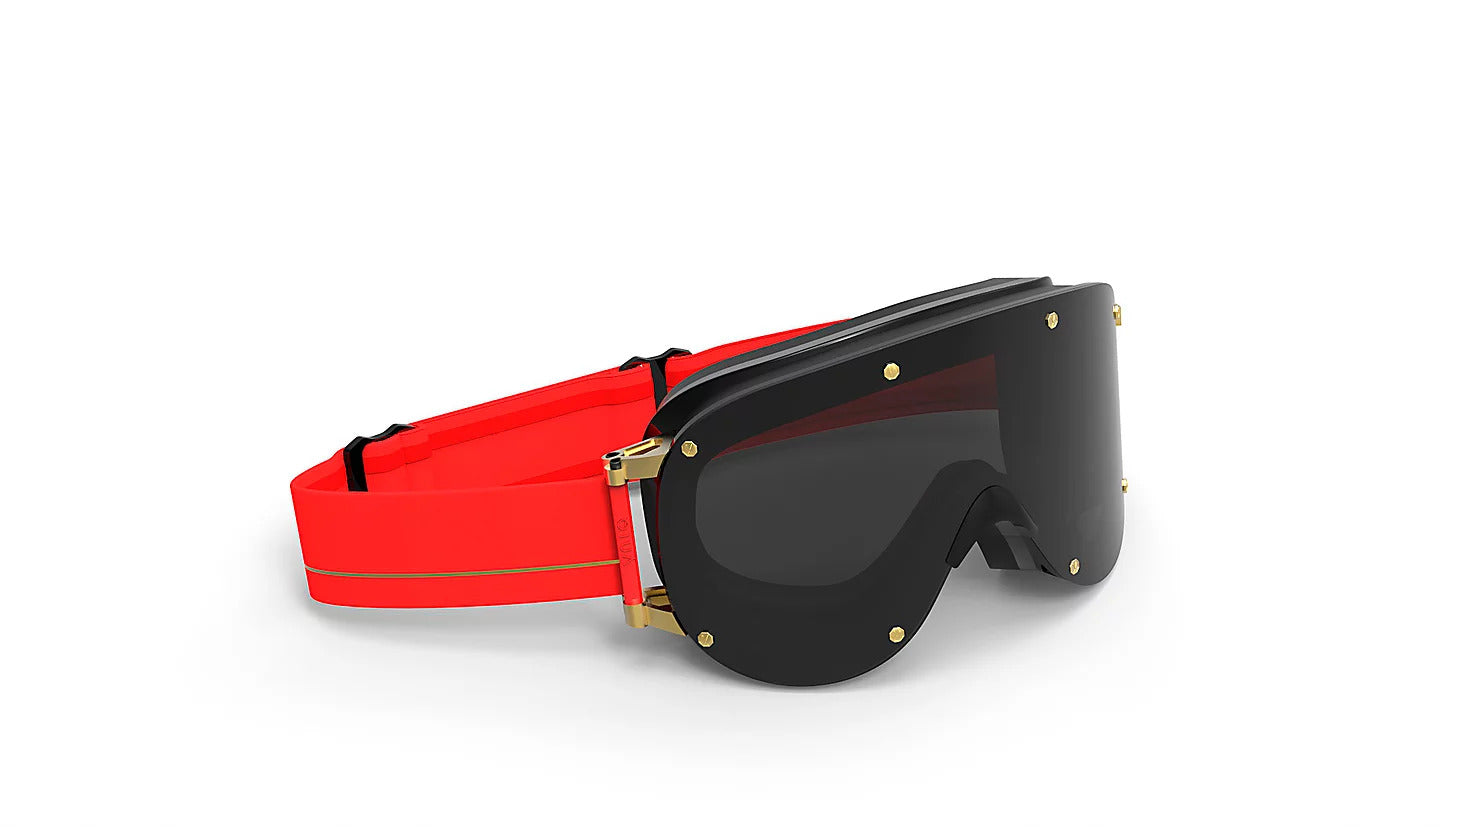 415 RED/ FOLD SMOKE LENSE EXTENDED VISION GOGGLES - SMOKE LENSE